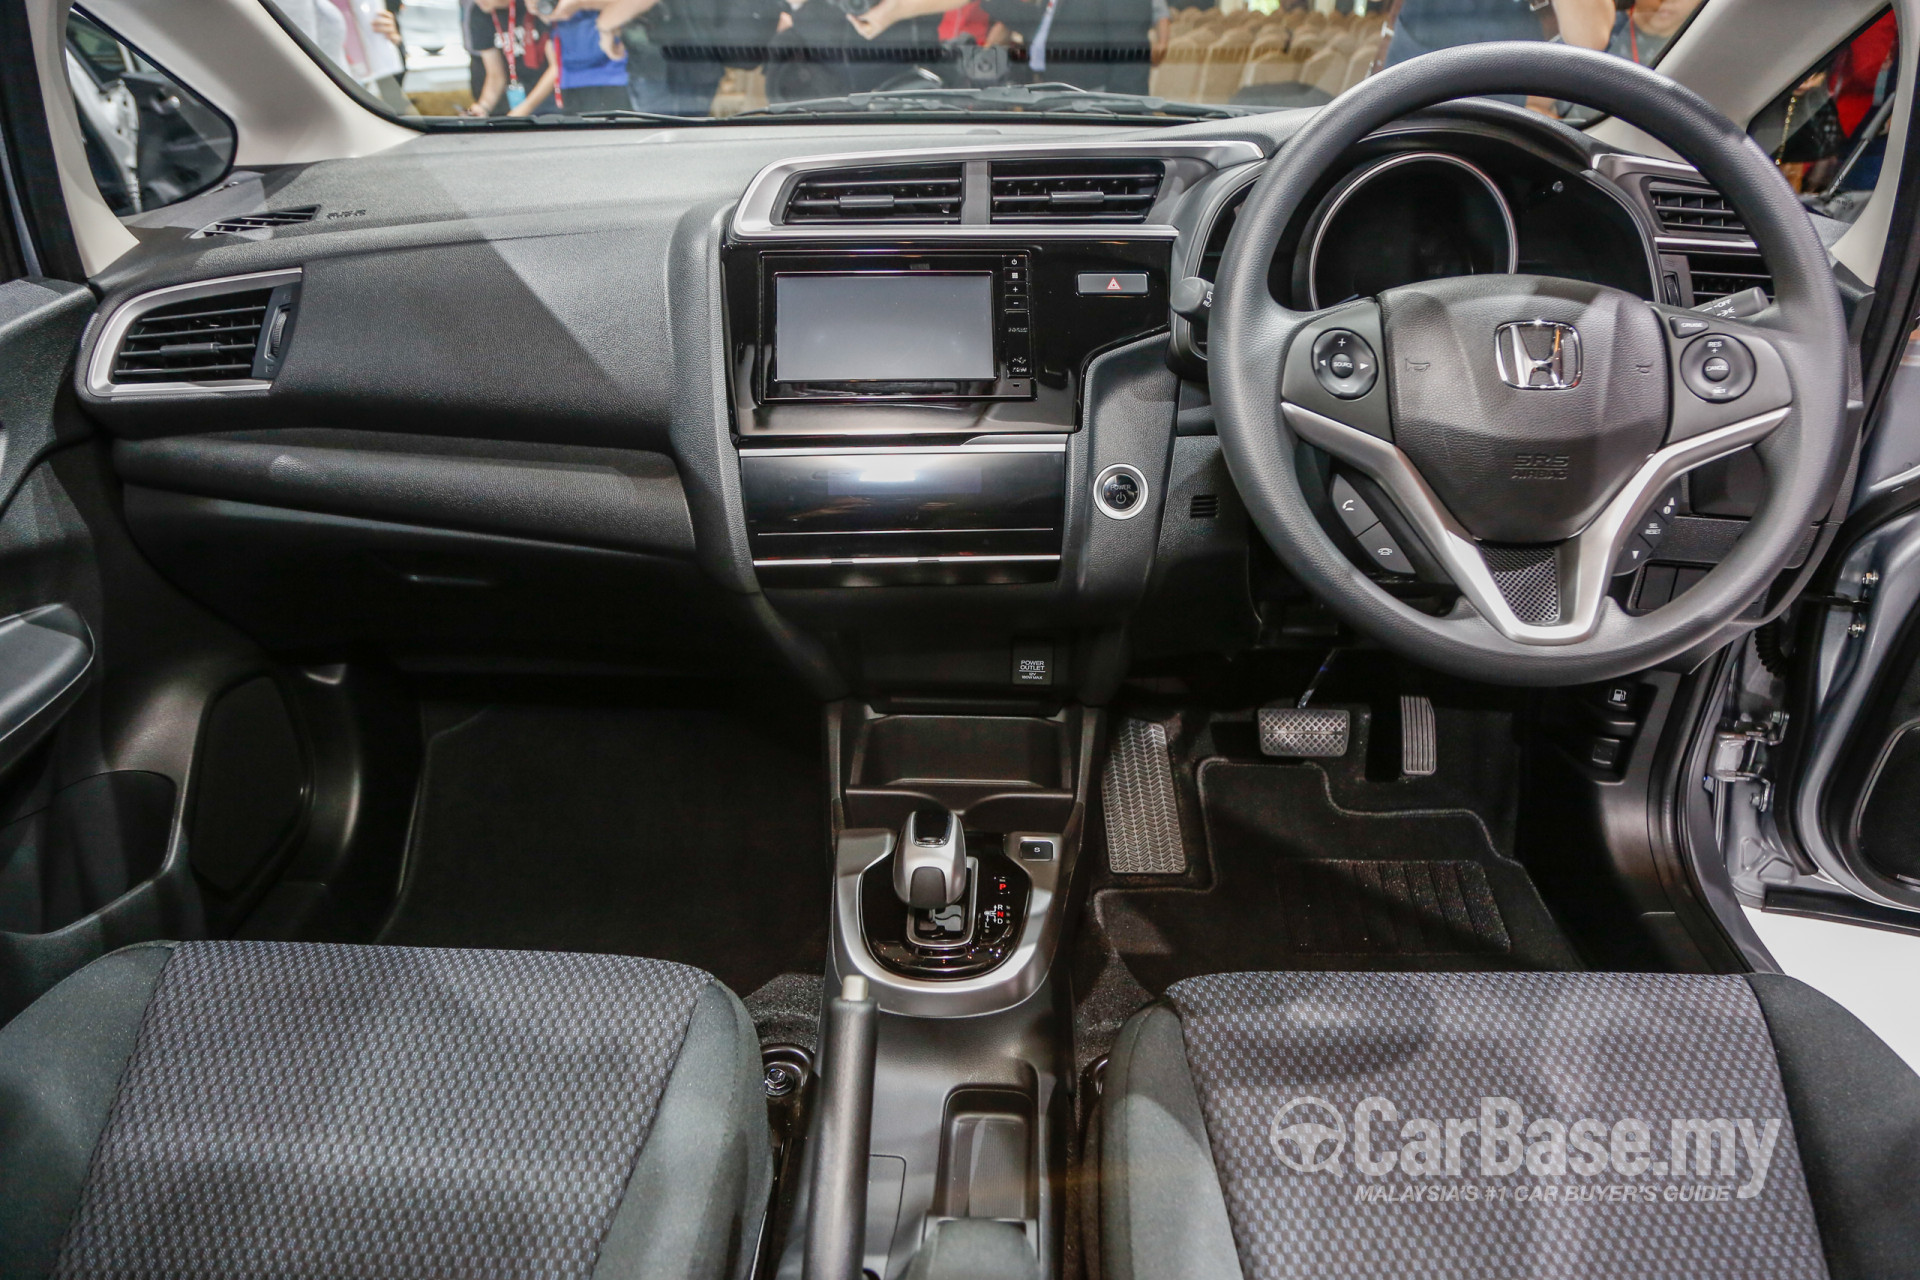 Honda Jazz Gk Facelift 2017 Interior Image In Malaysia Reviews